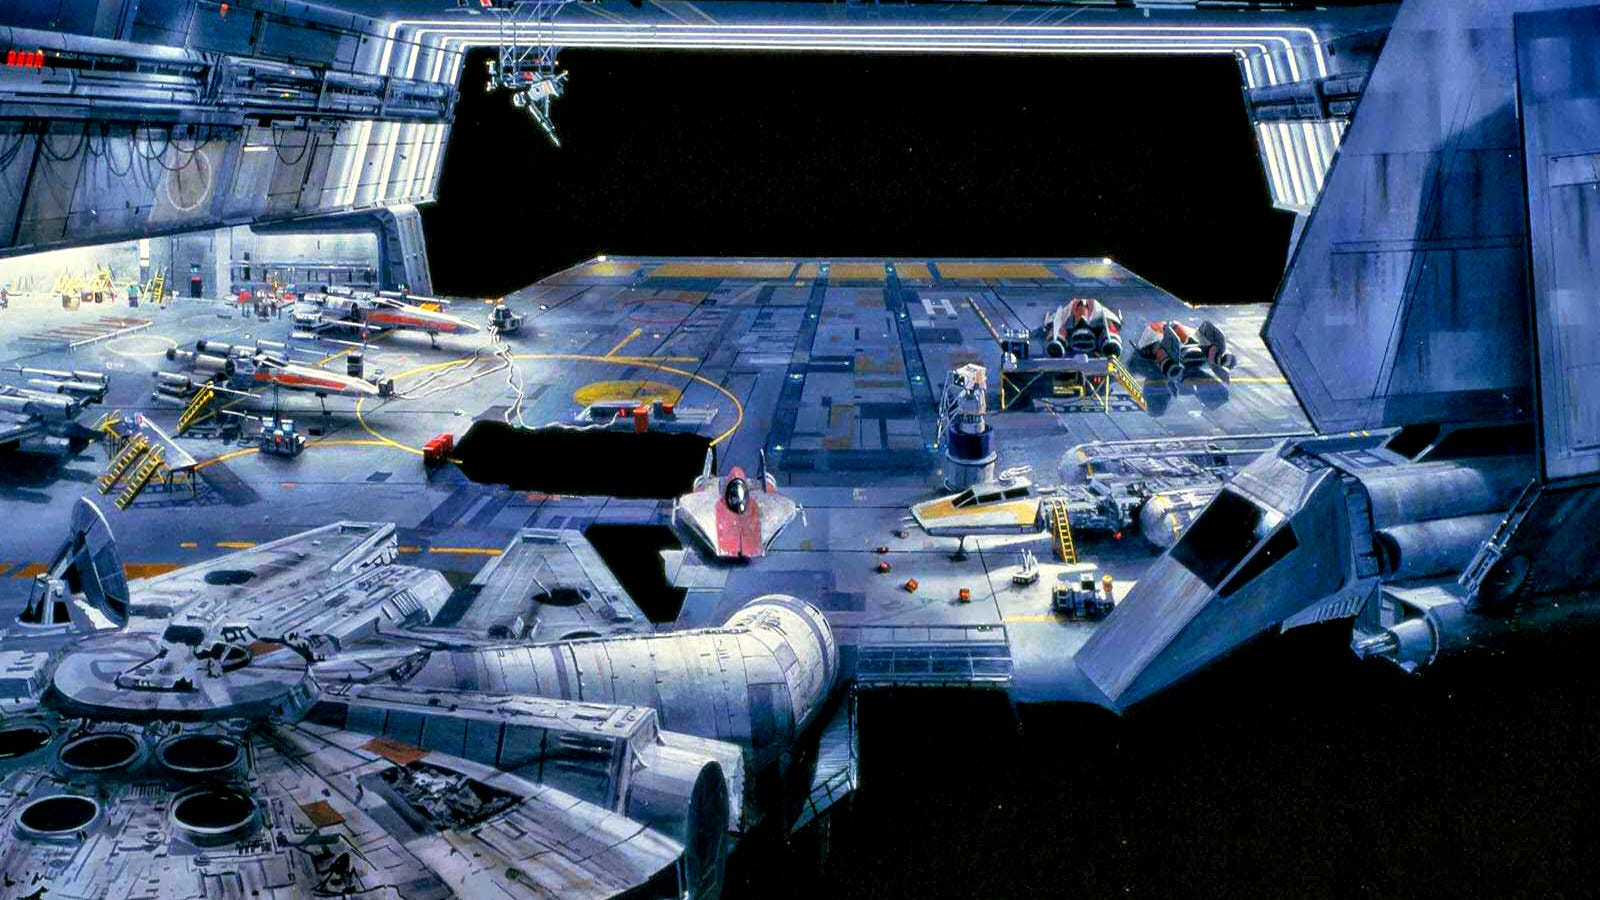 How ILM made you believe this painting was a real hangar in Star Wars